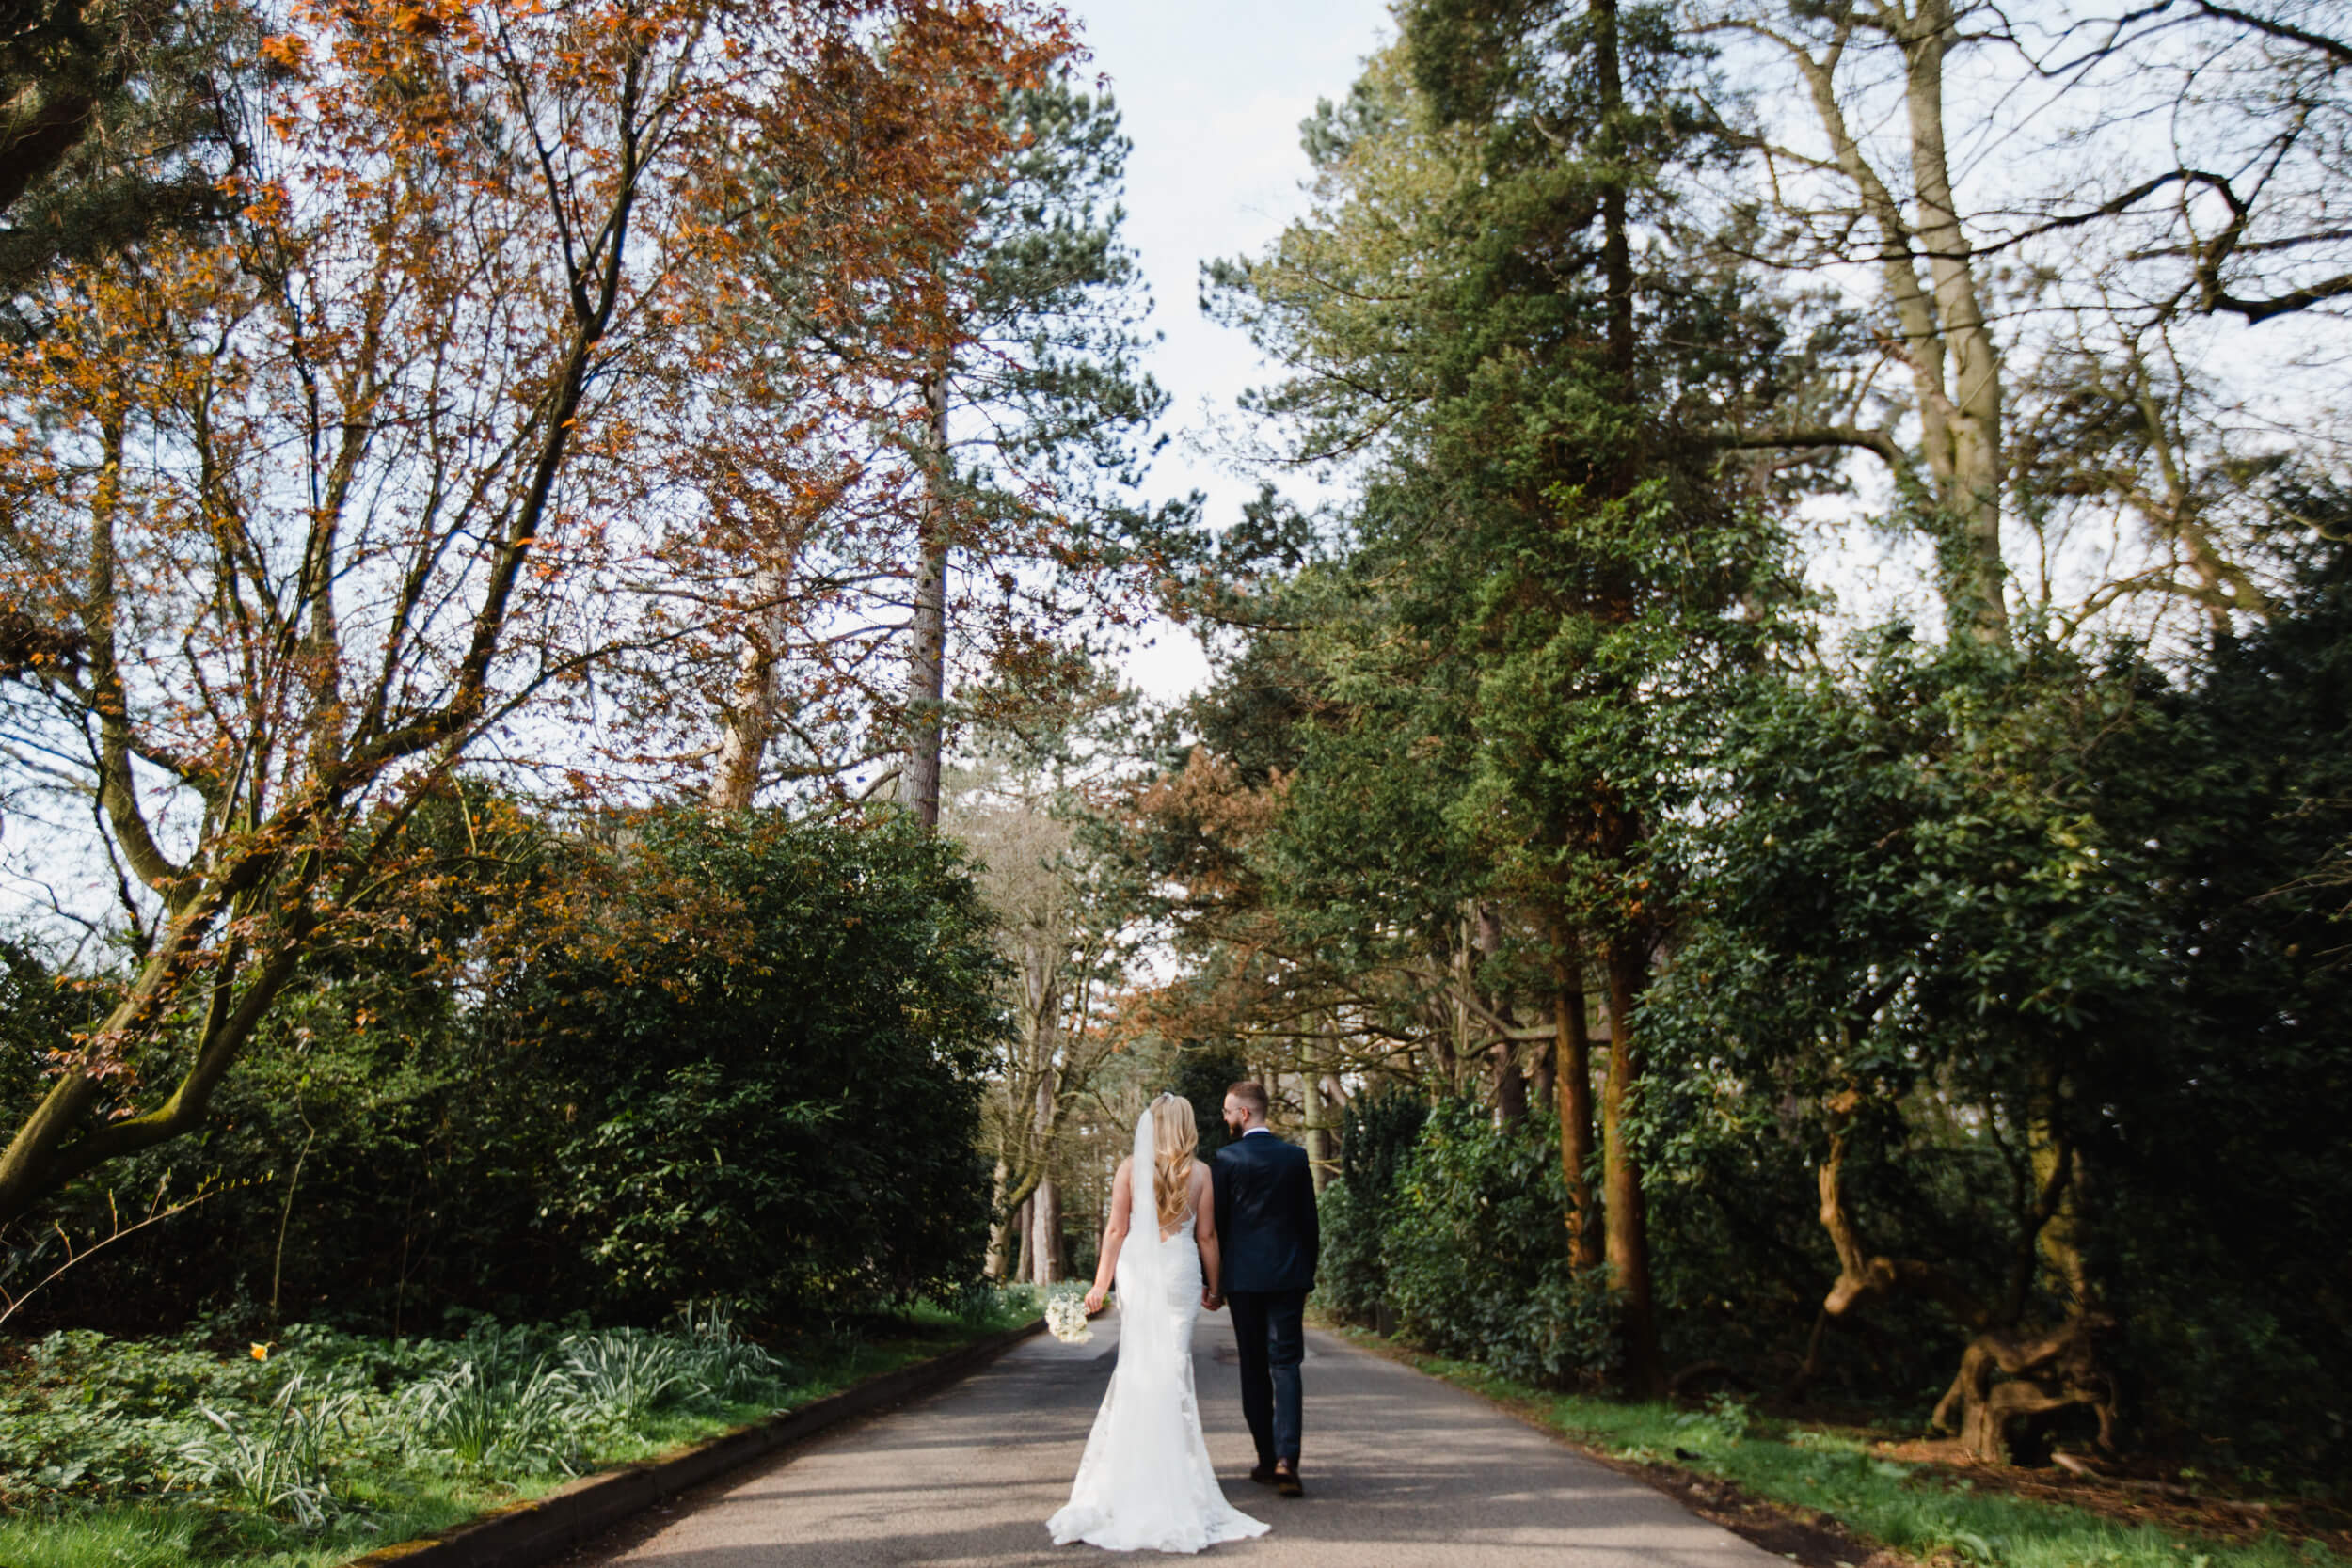 wide angle lens photograph of newlyweds holding hands between trees at the park